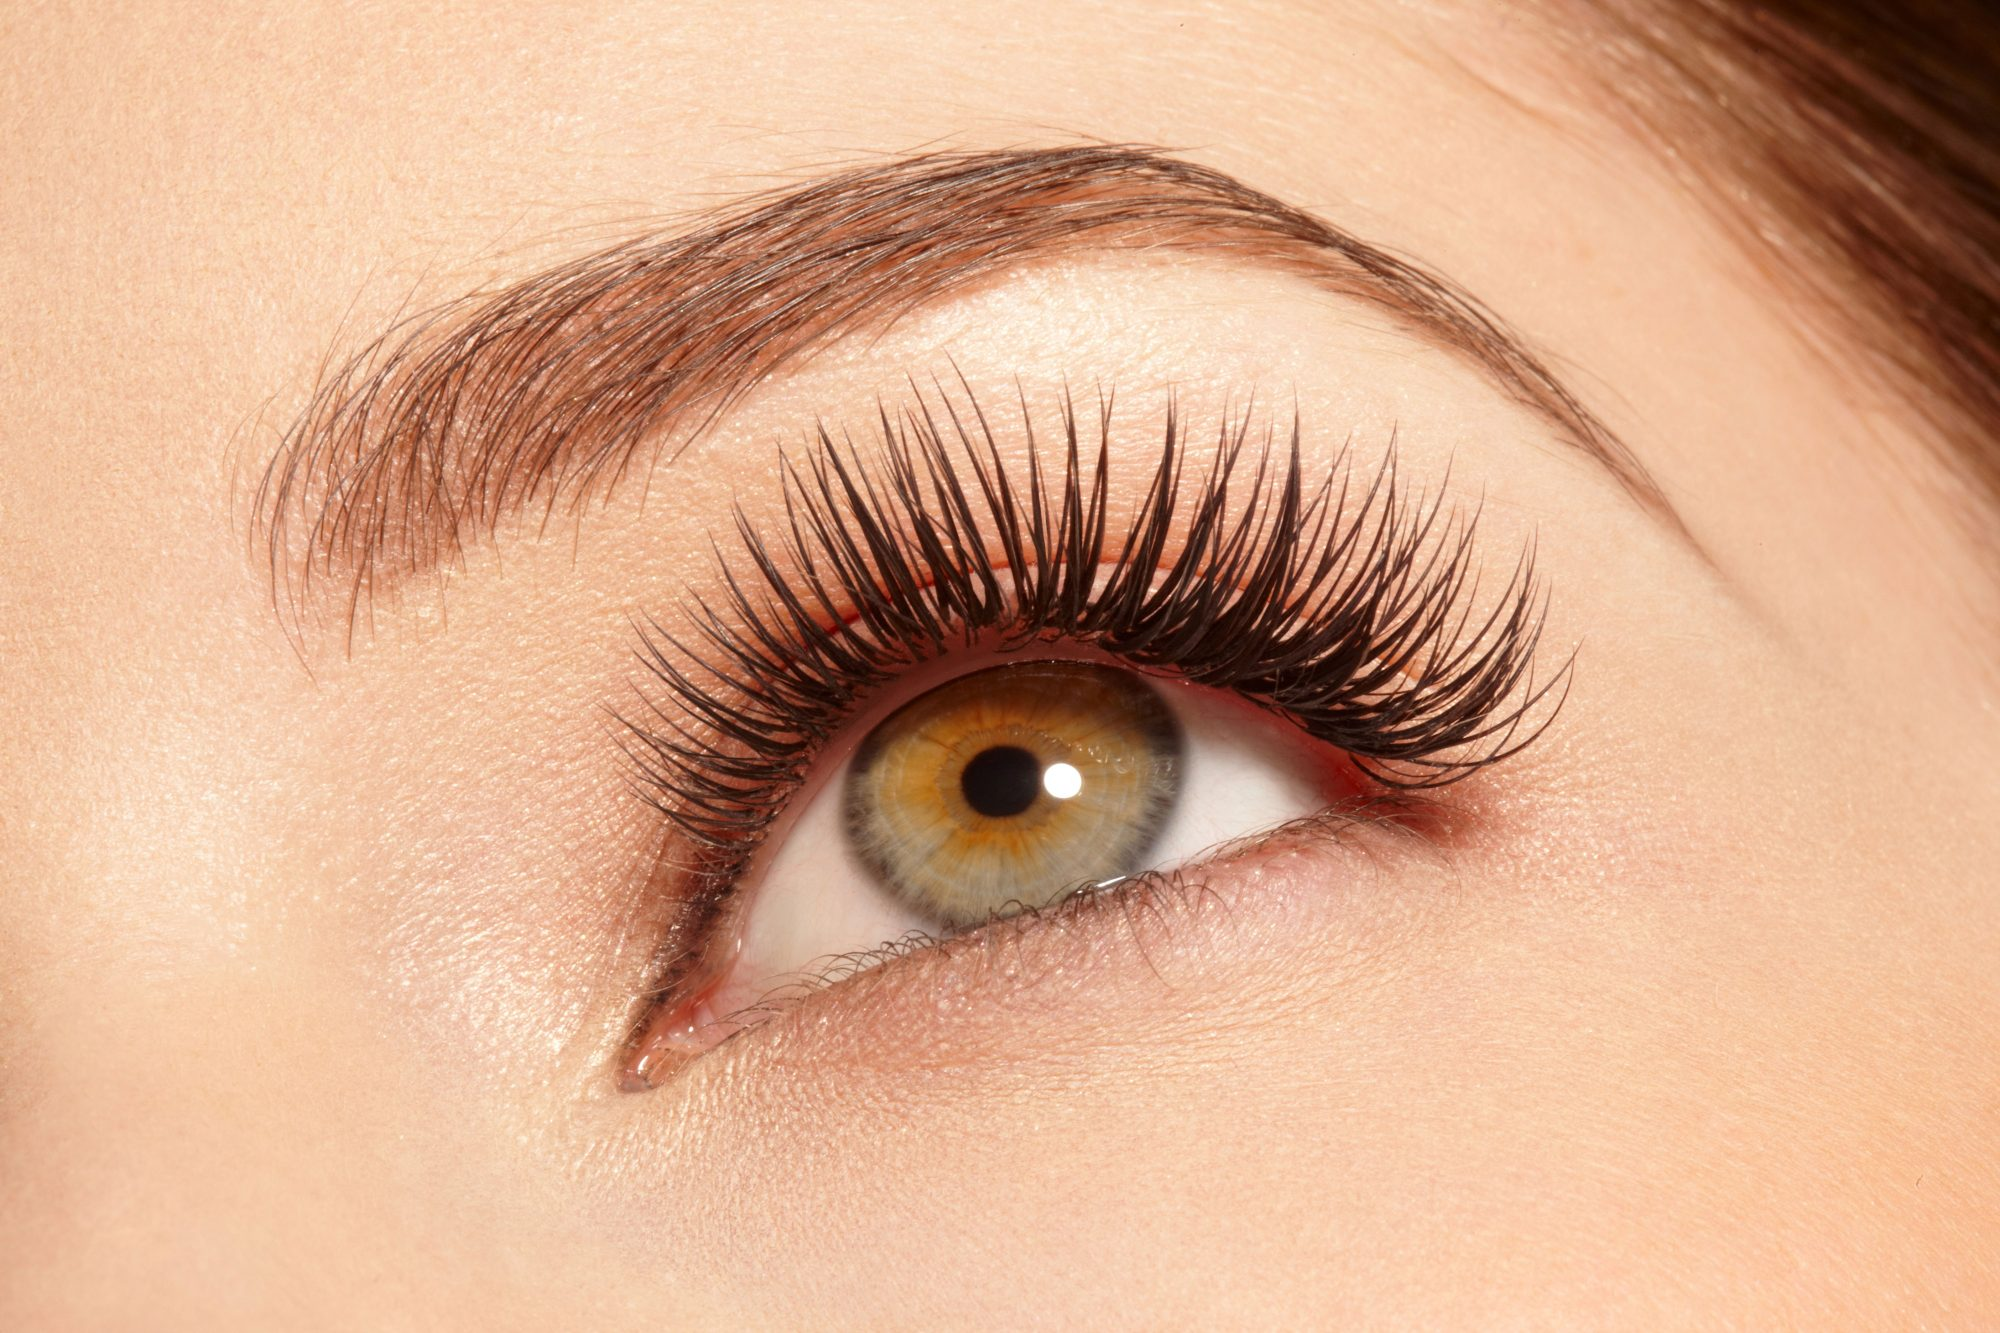 Woman's Eyelashes